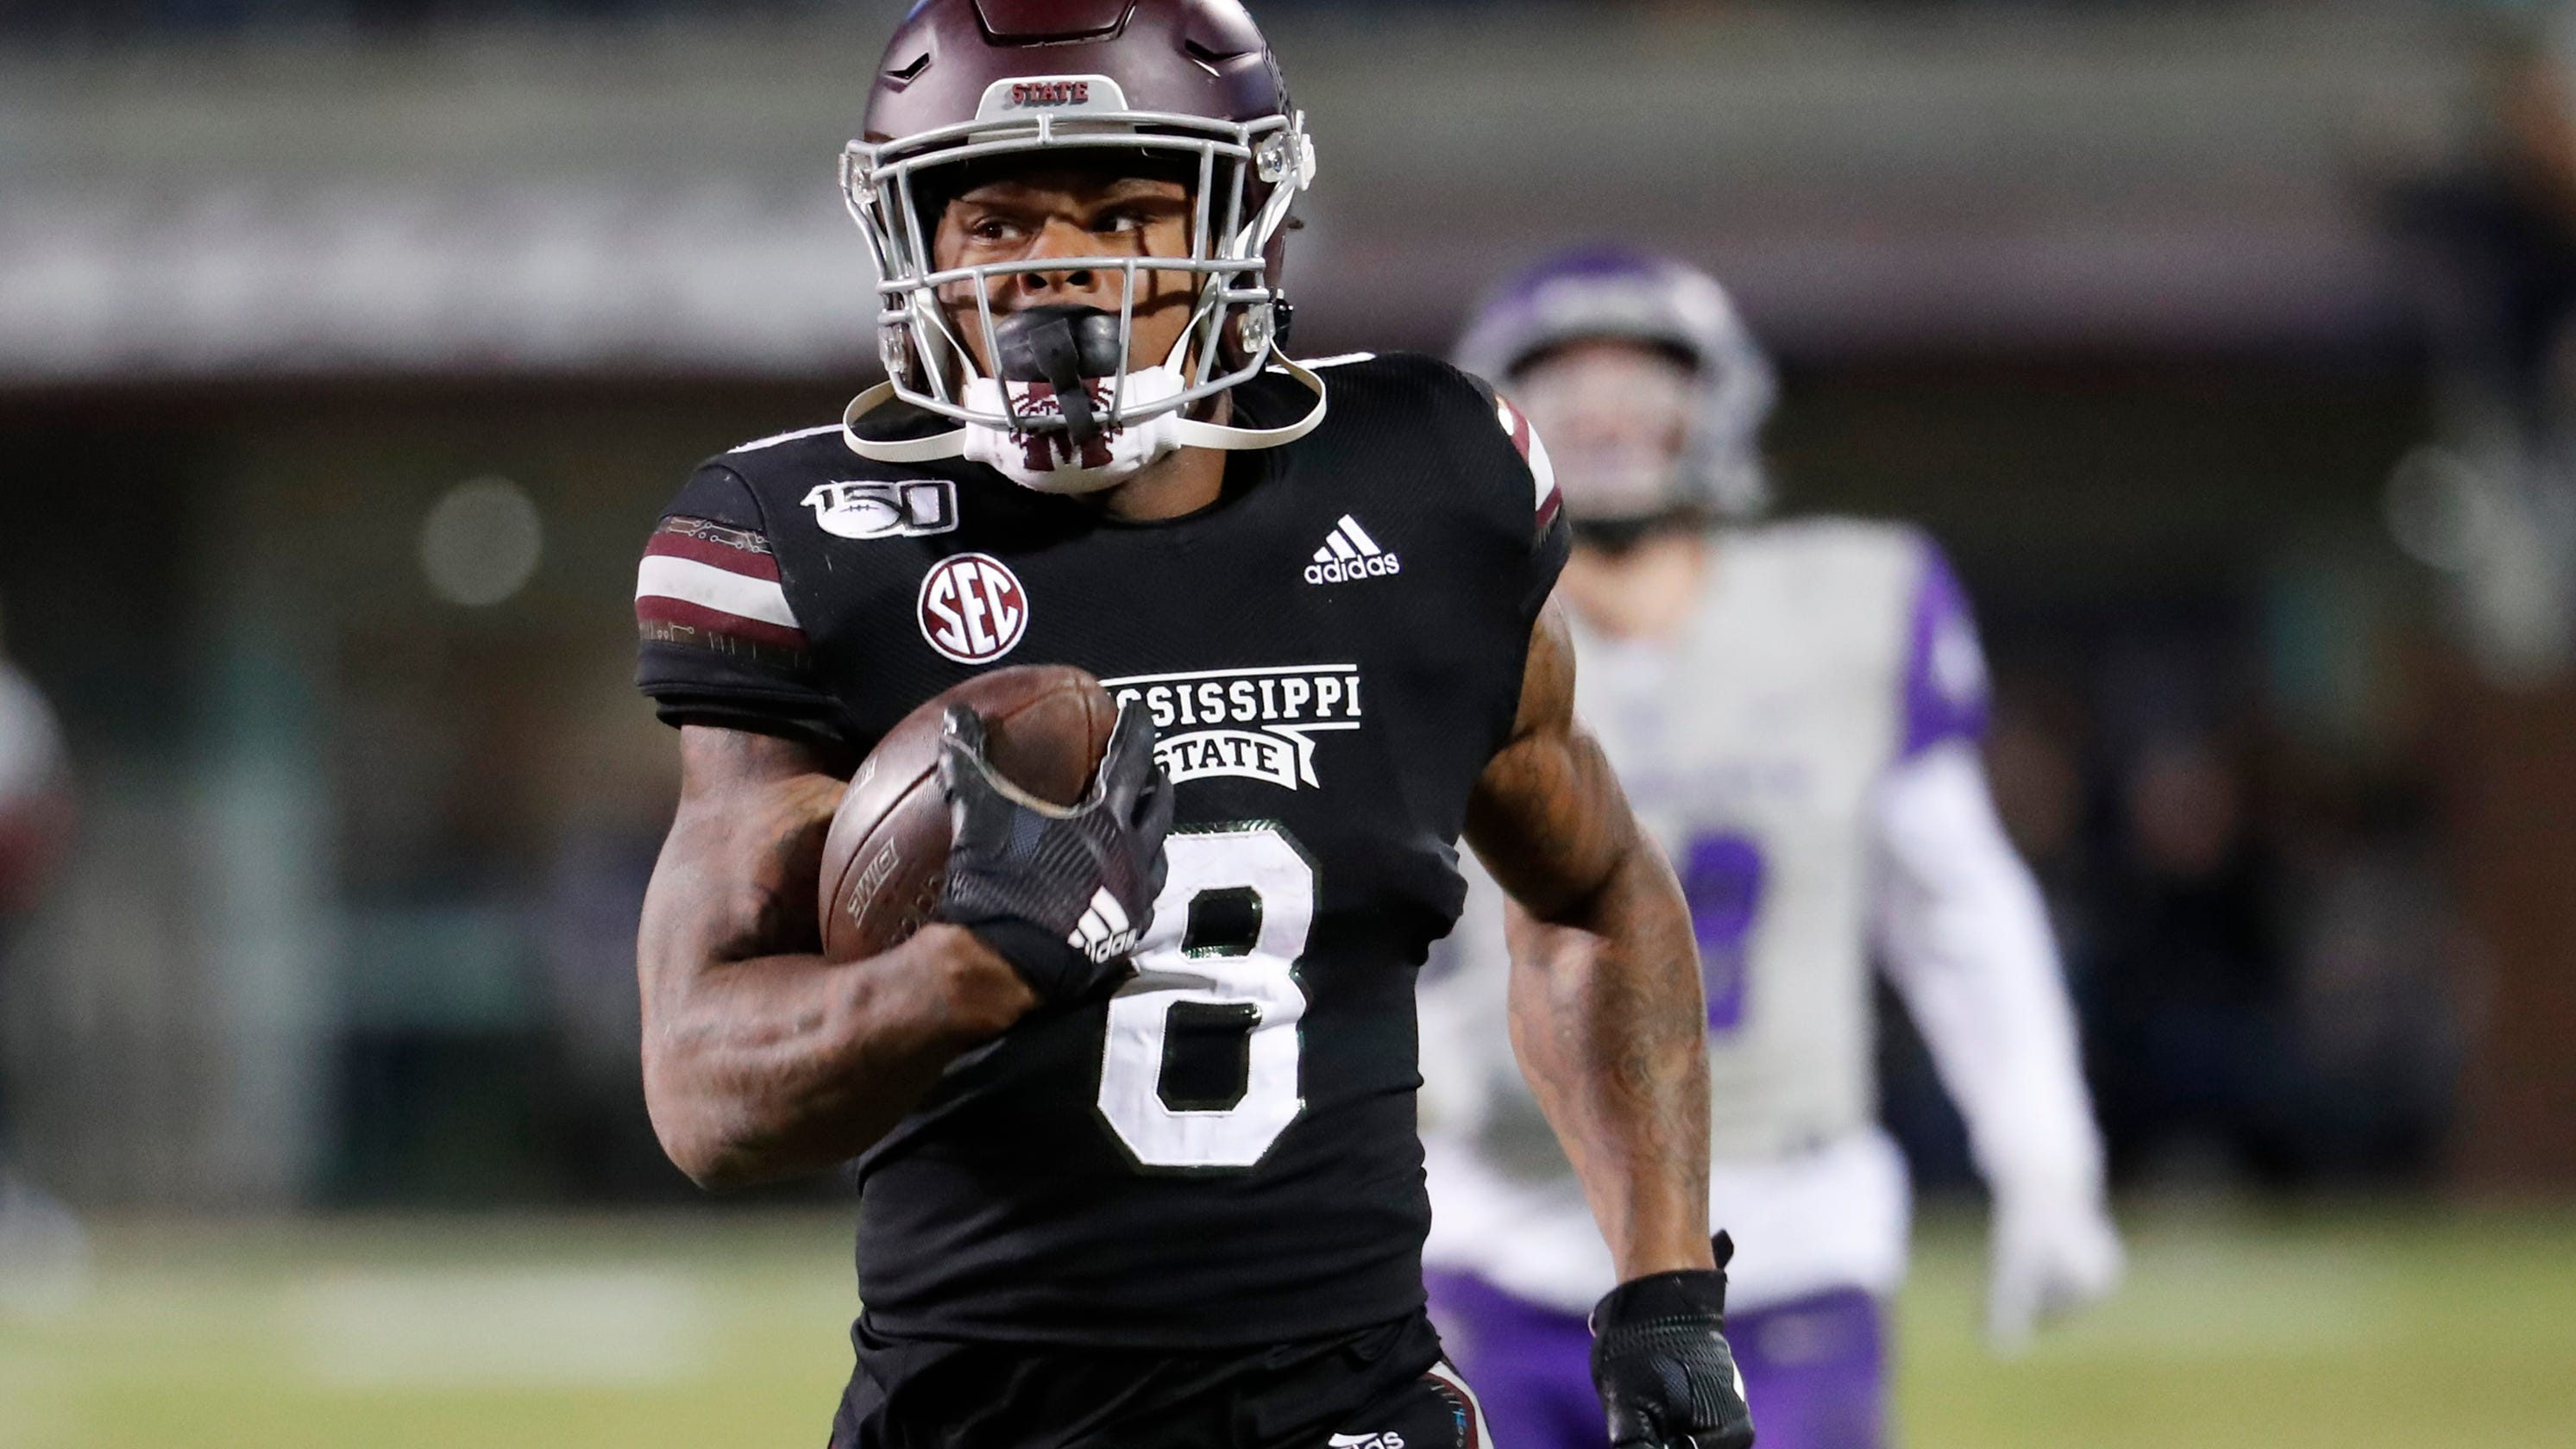 Mississippi State RB Kylin Hill says he won't represent 'this State anymore' if flag not changed